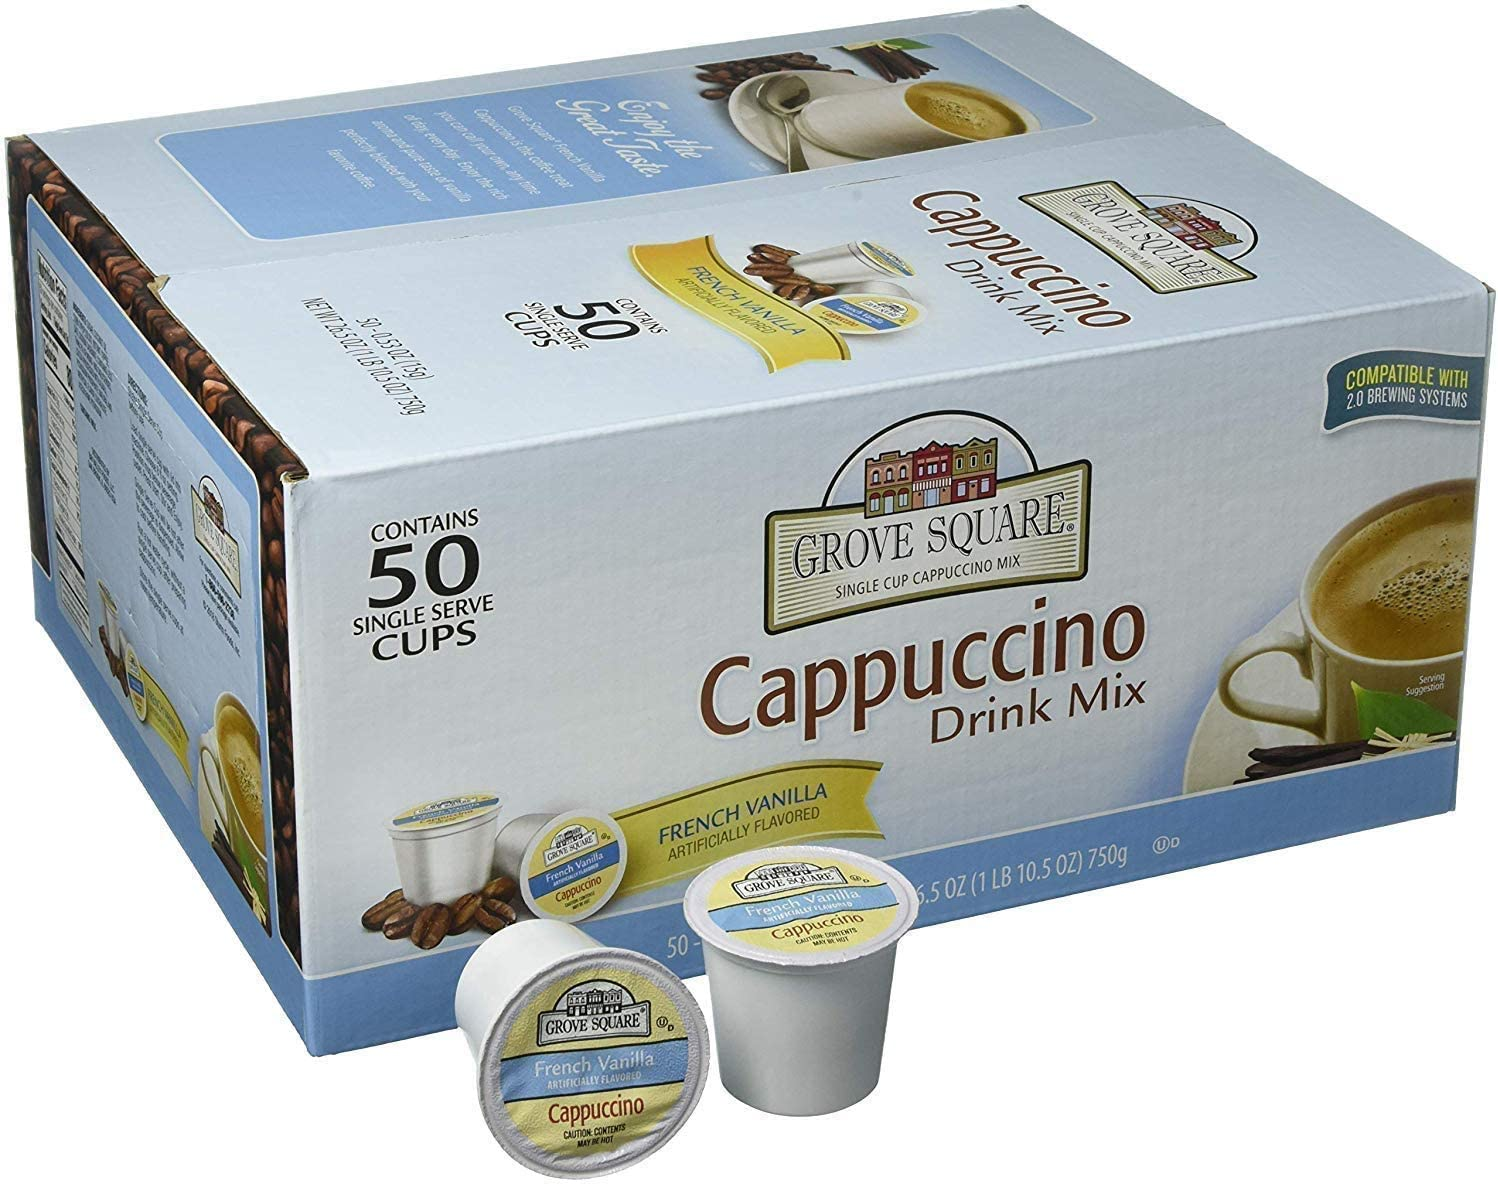 Grove Square Cappuccino, French Vanilla, 50 Single Serve Cups (Packaging May Vary) (3 Case(50-Pack))